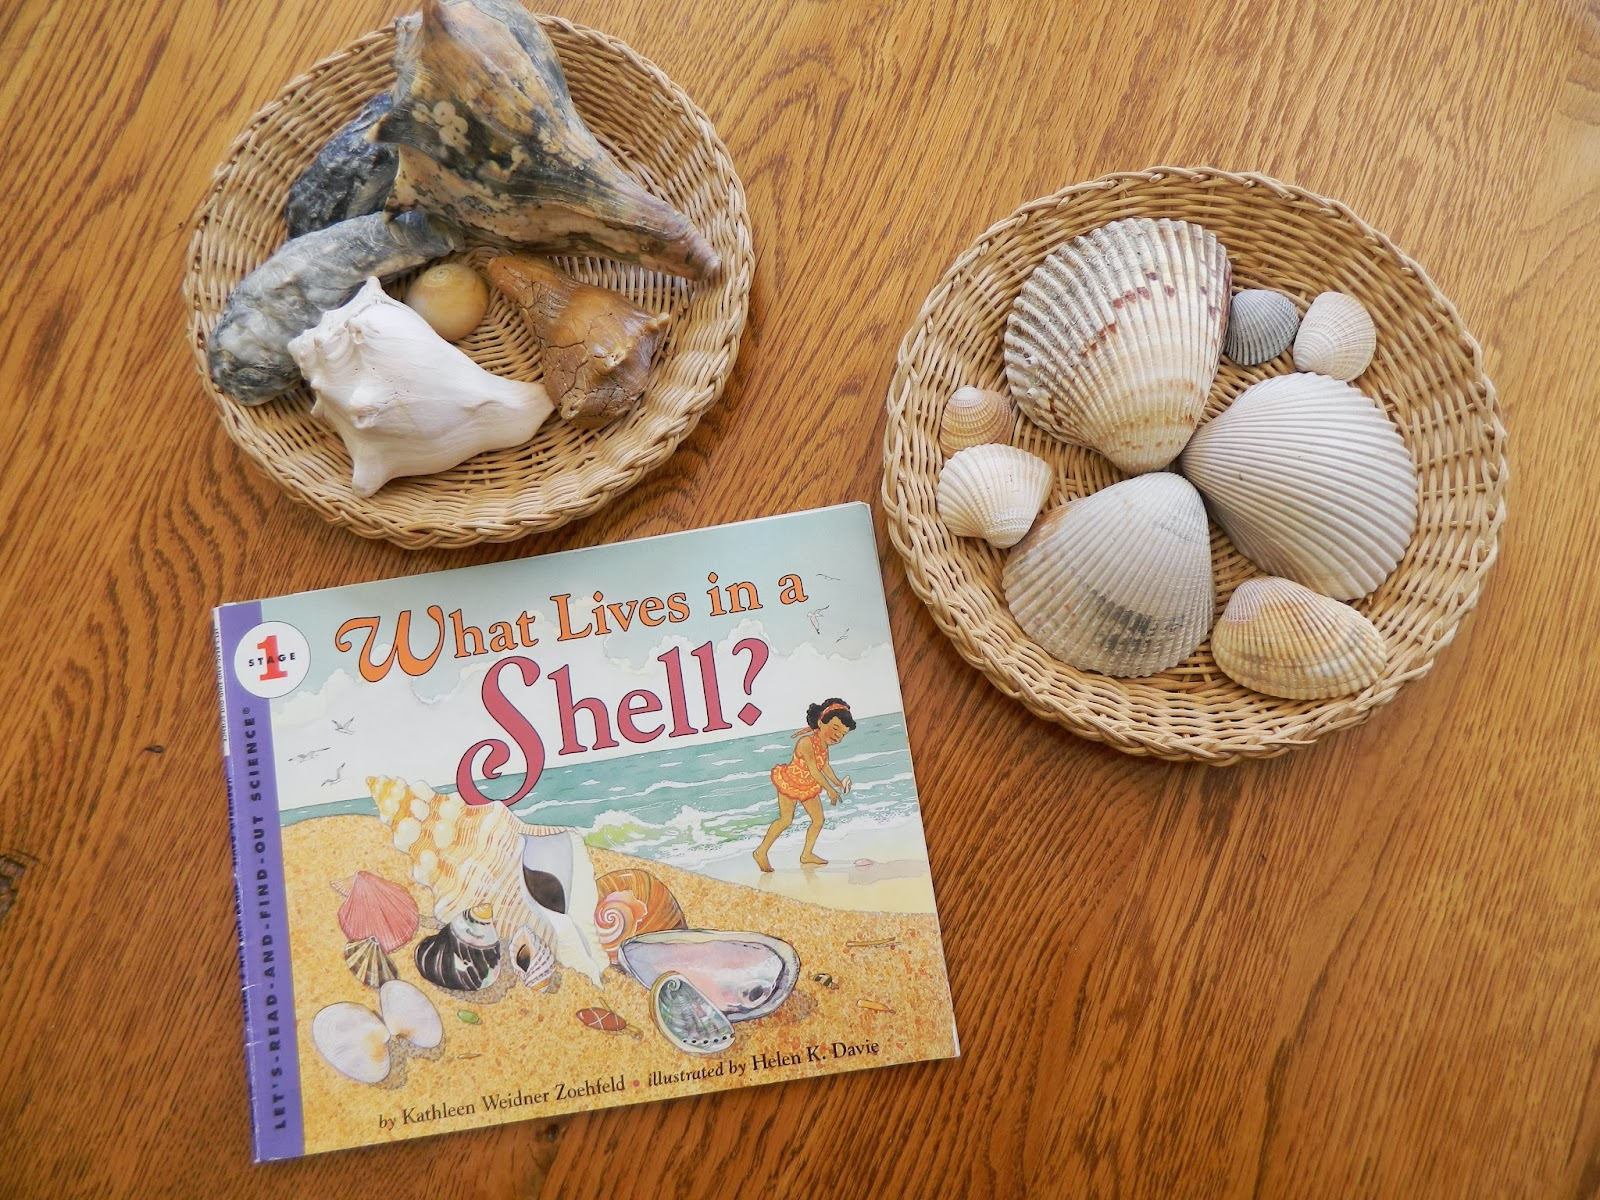 popular childrens books, all about shells